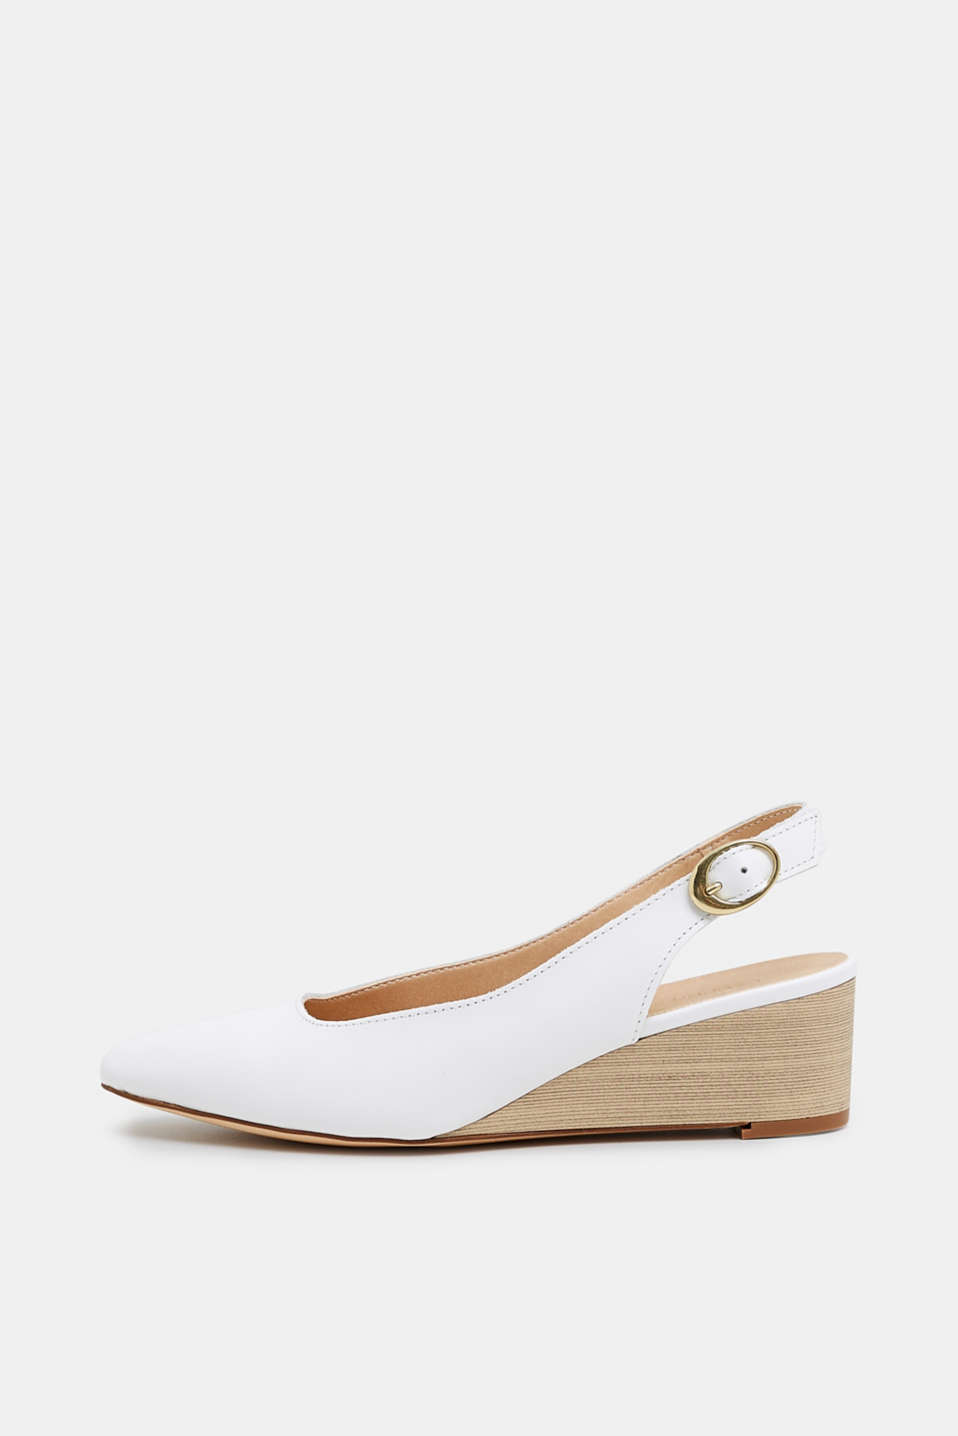 Esprit - Sling back court shoes with wedge heel, in leather